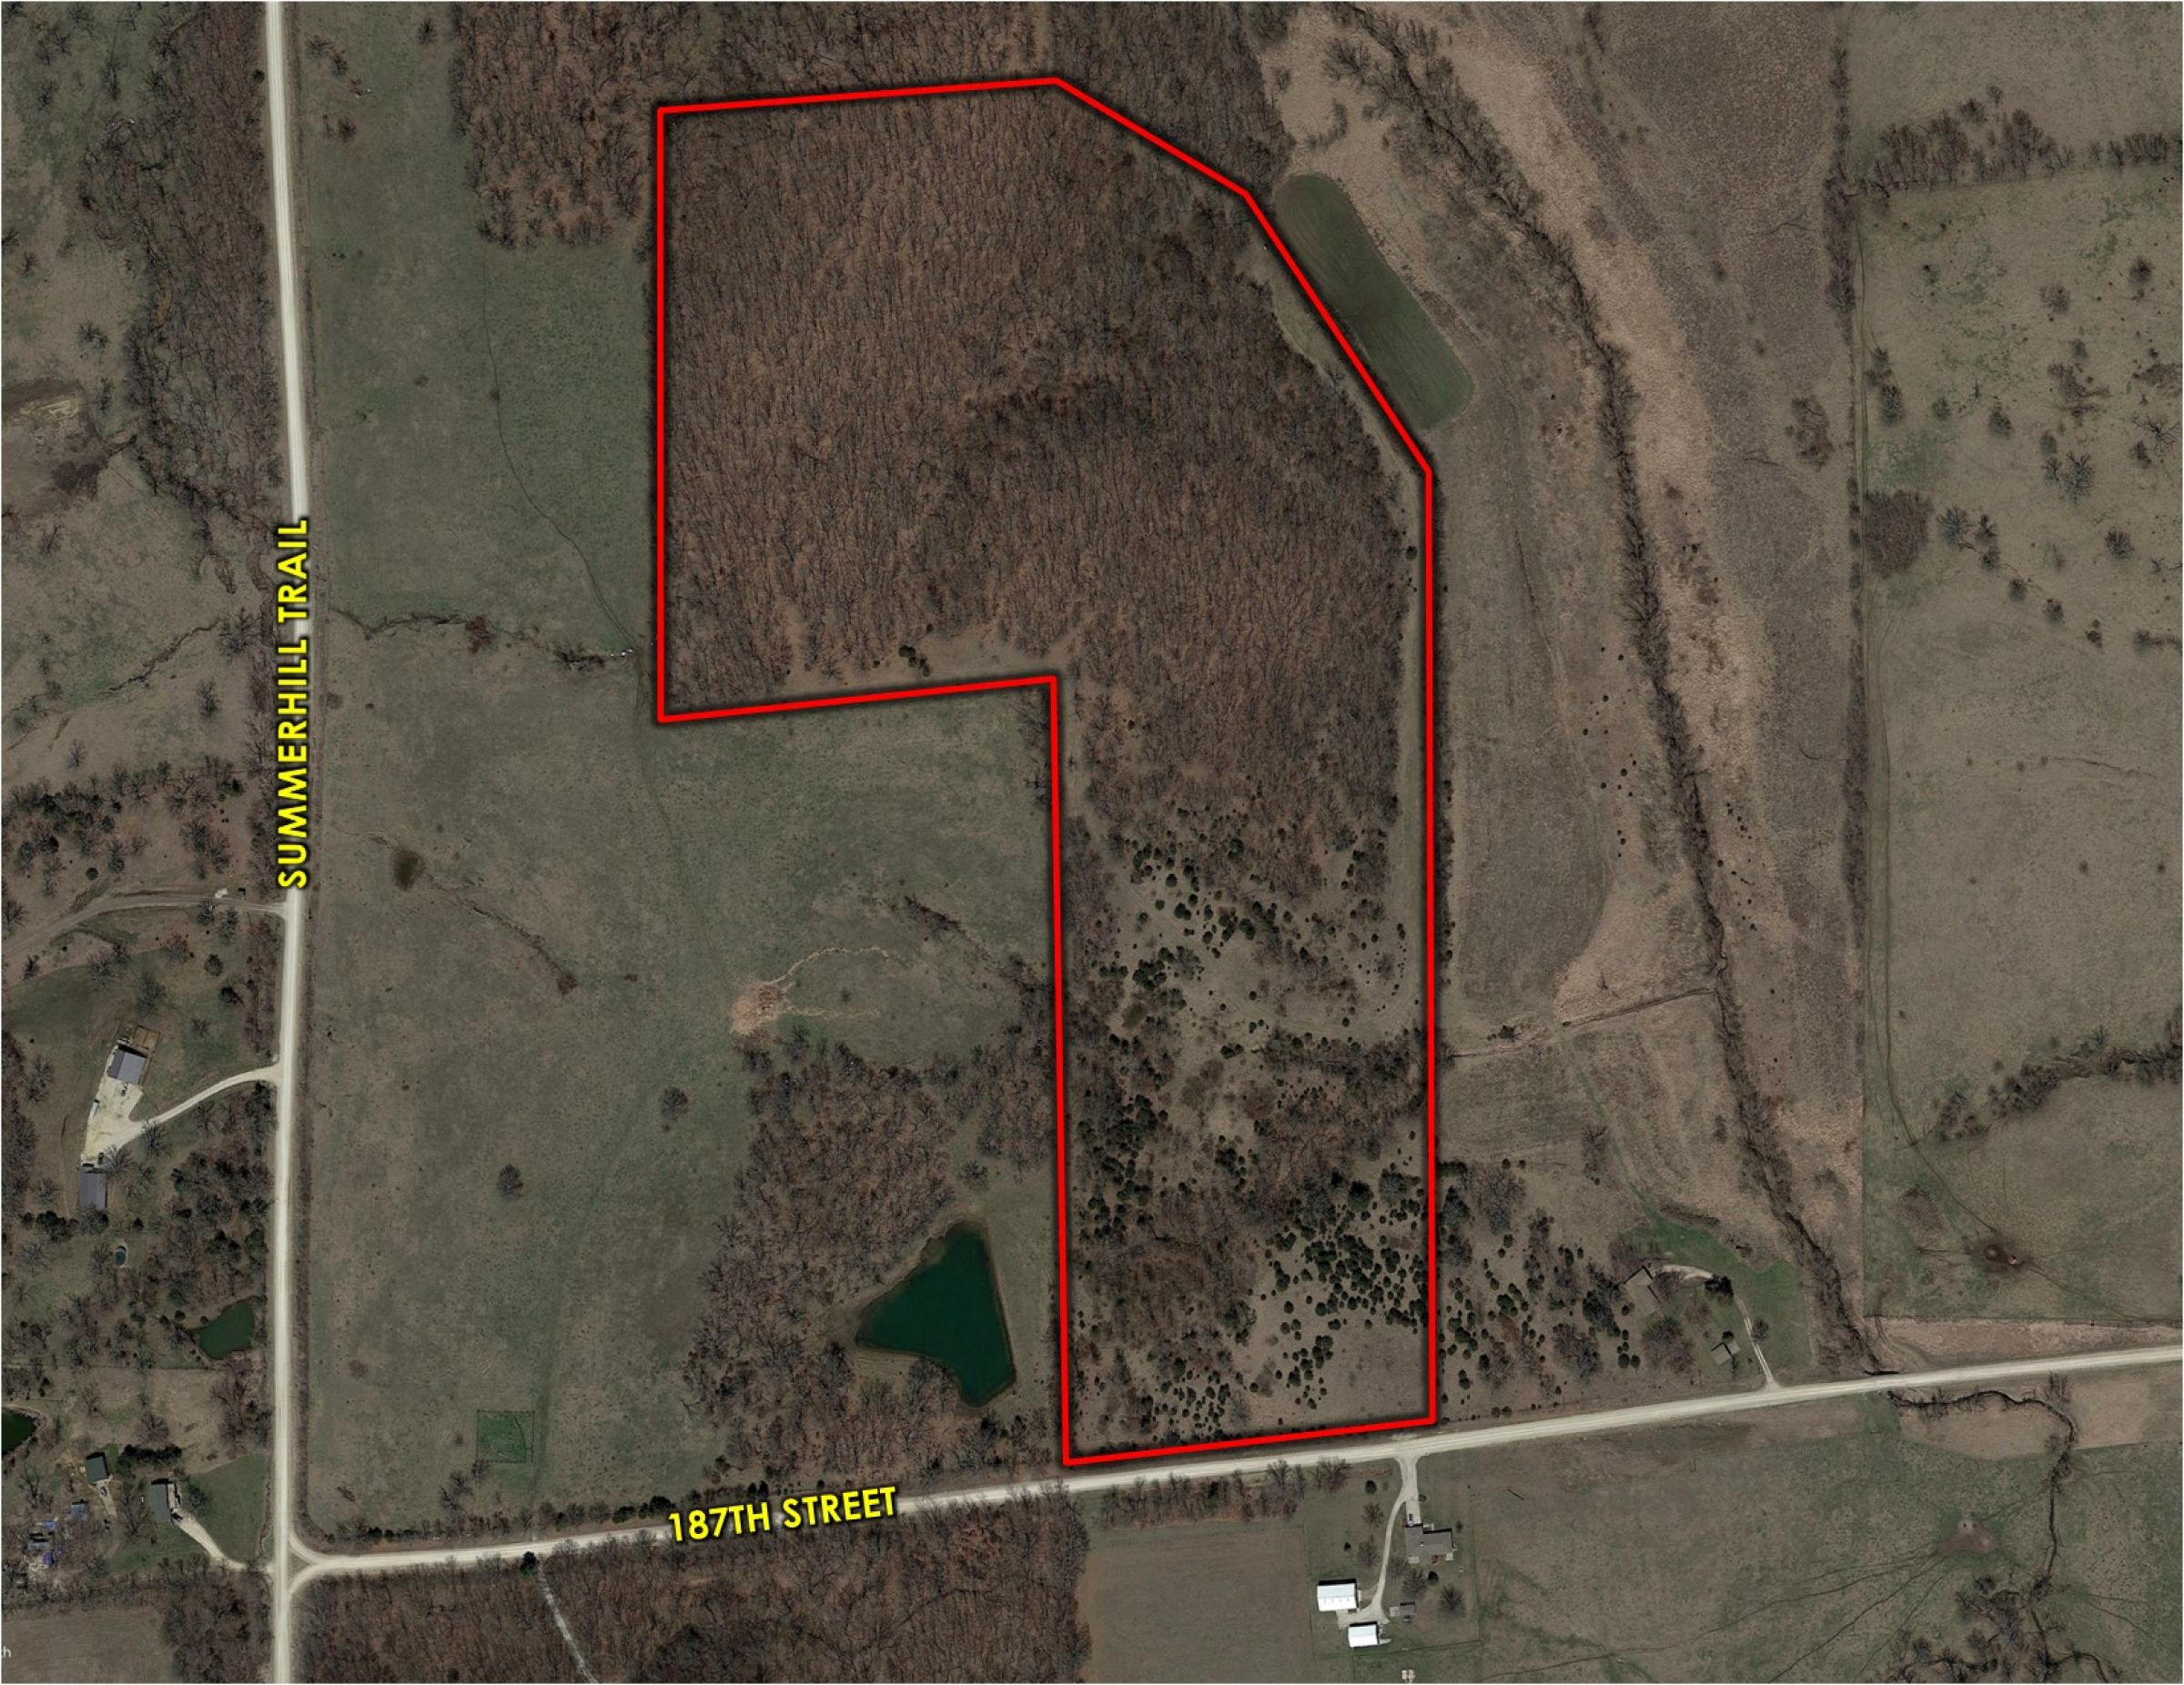 Peoples Company Land for Sale - #14818 - 187th Street, Patterson, IA